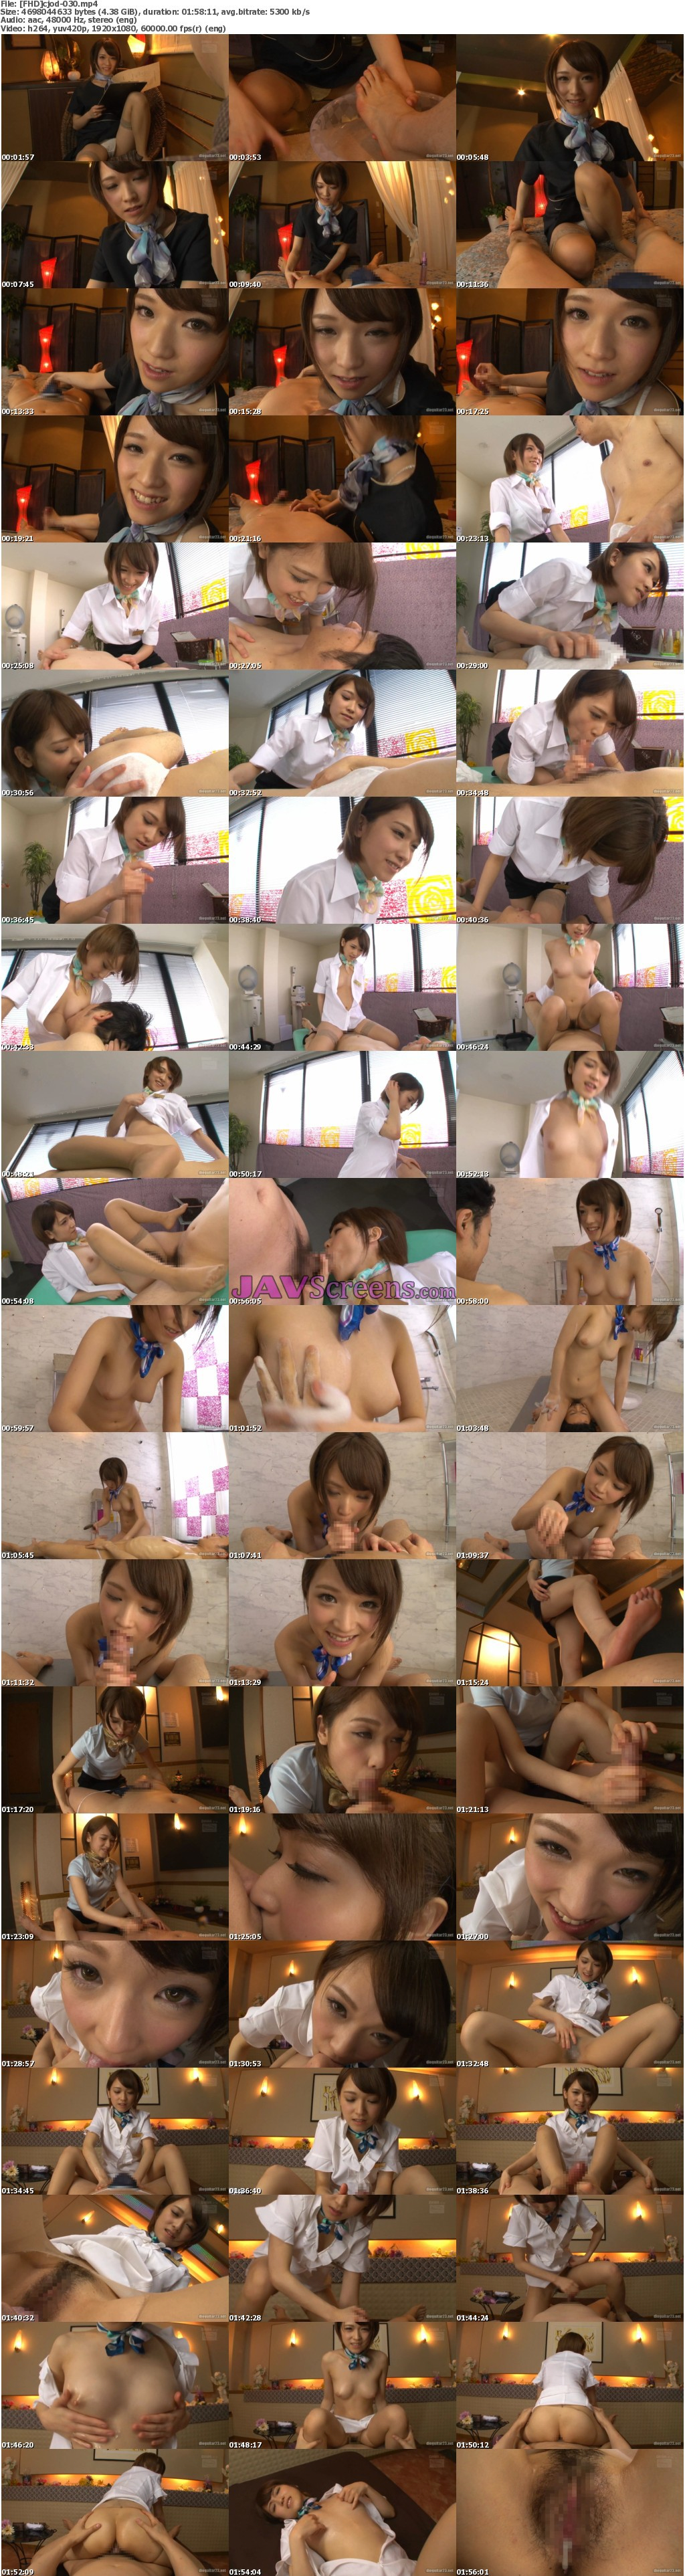 CJOD-030.jpg - JAV Screenshot